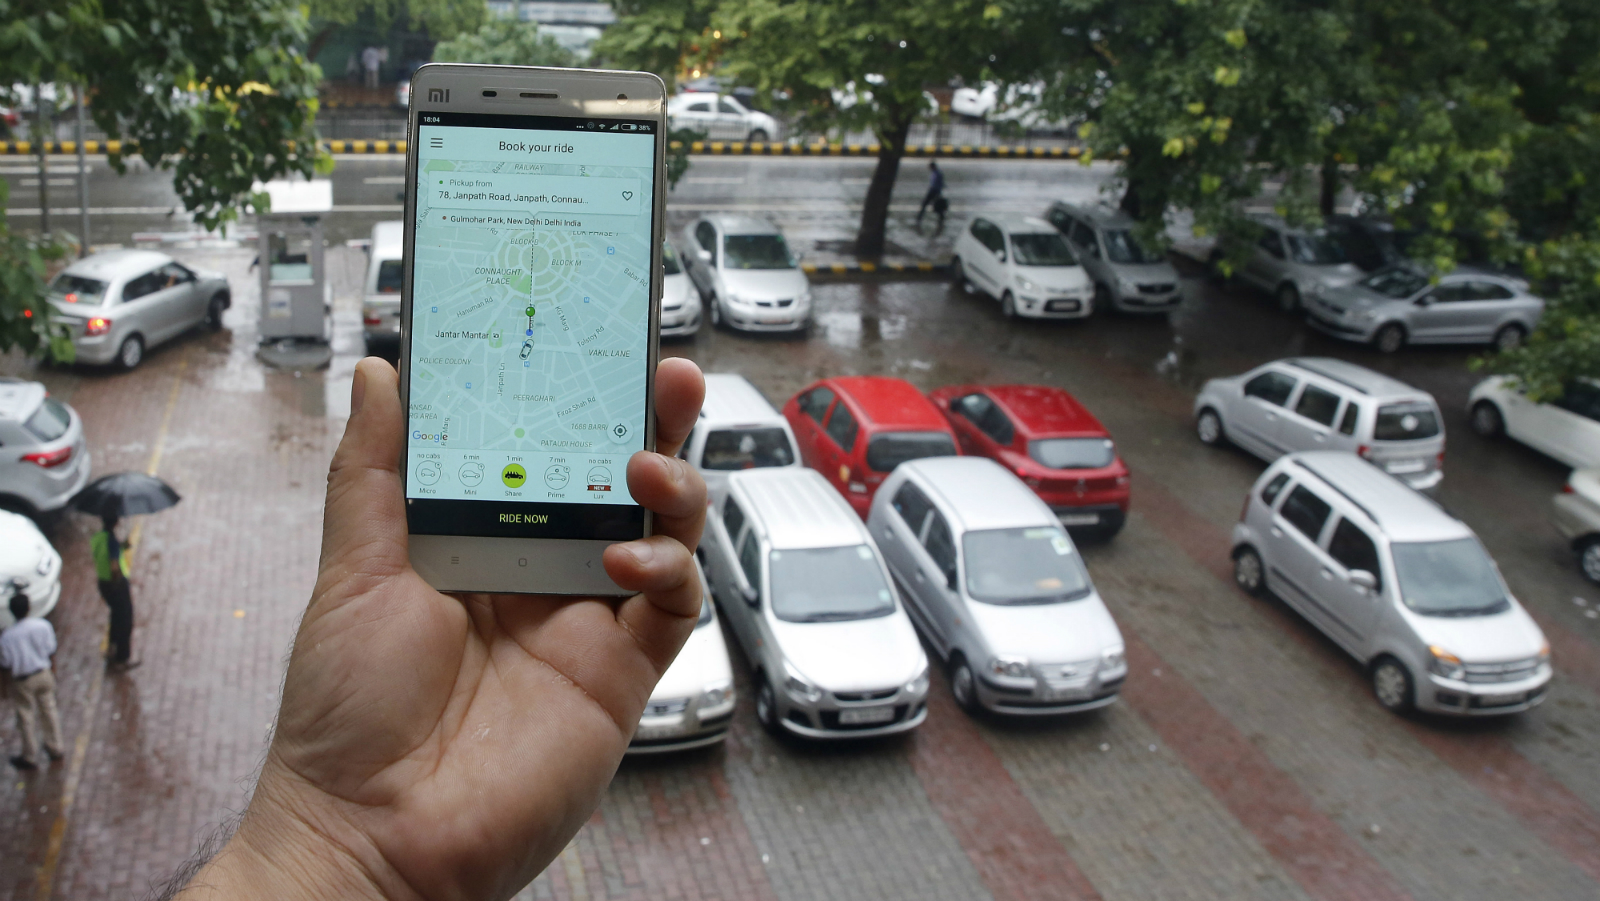 An Indian man holds a smartphone with the Ola app to book a taxi in New Delhi, India, 29 July 2016. According to local news reports, App-based taxi services made considerable profits during recent auto rickshaw and taxi strikes that were directed against App-based taxi services.  Scene